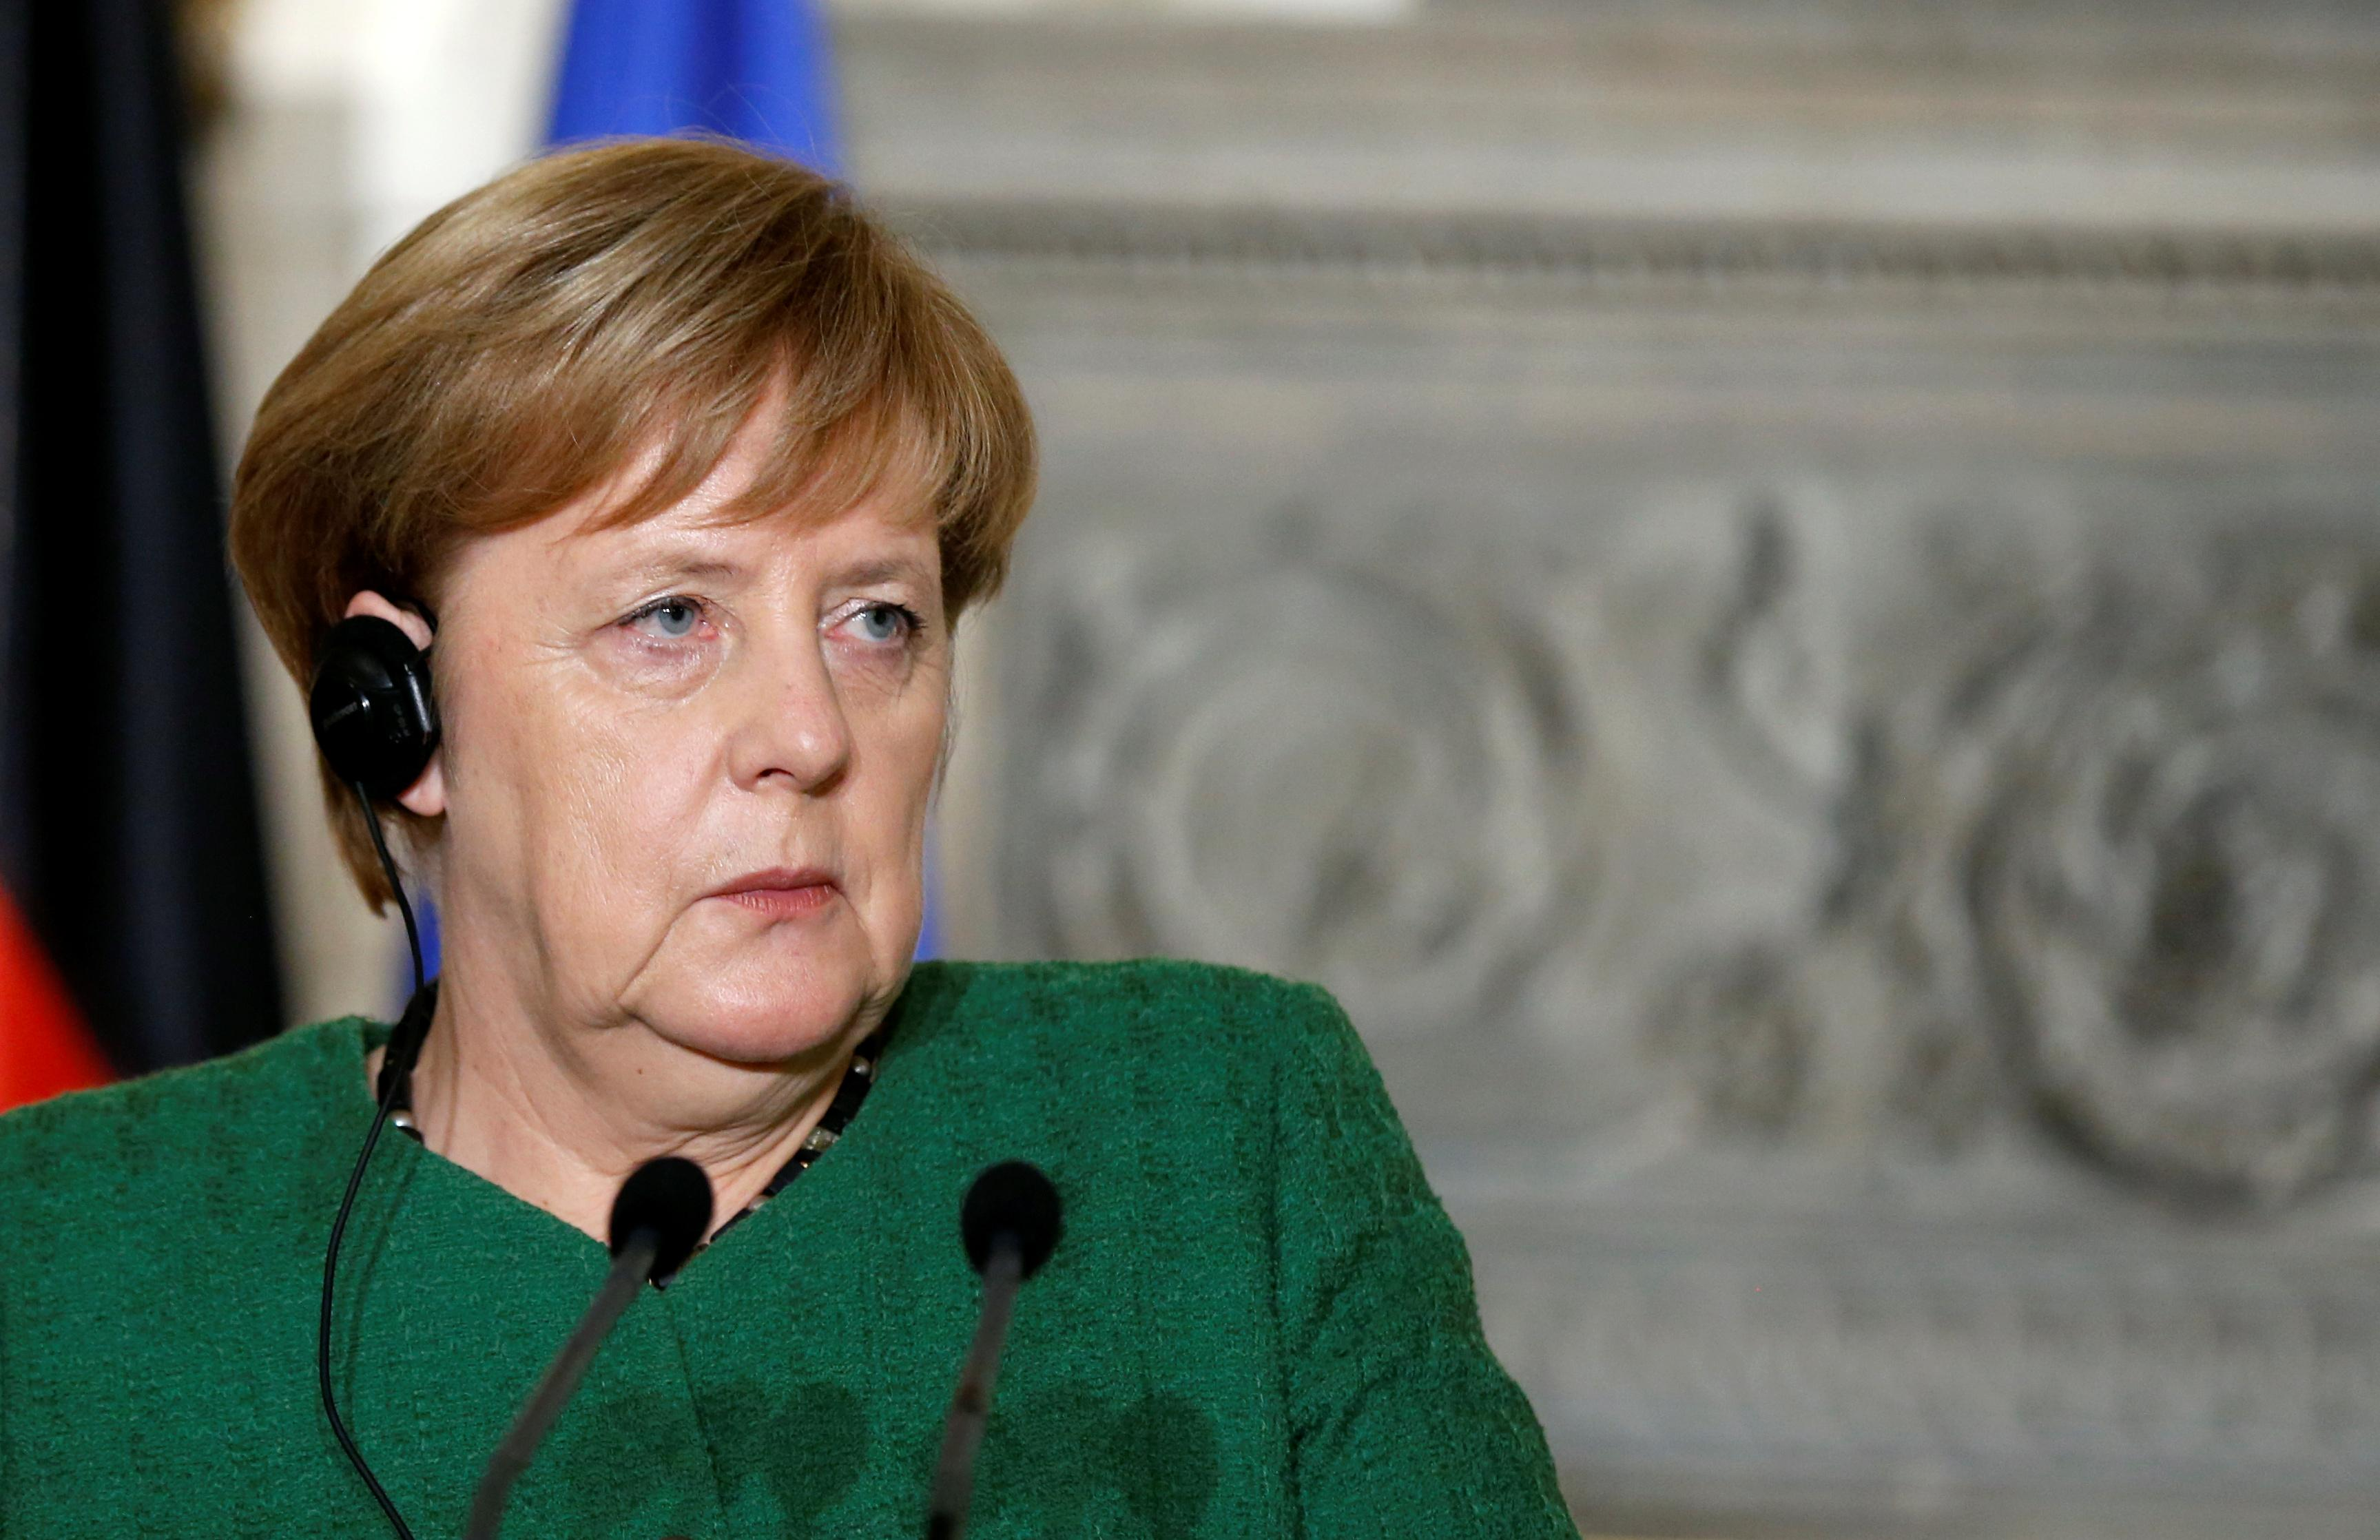 Germany's Merkel says expects Greece to return to markets